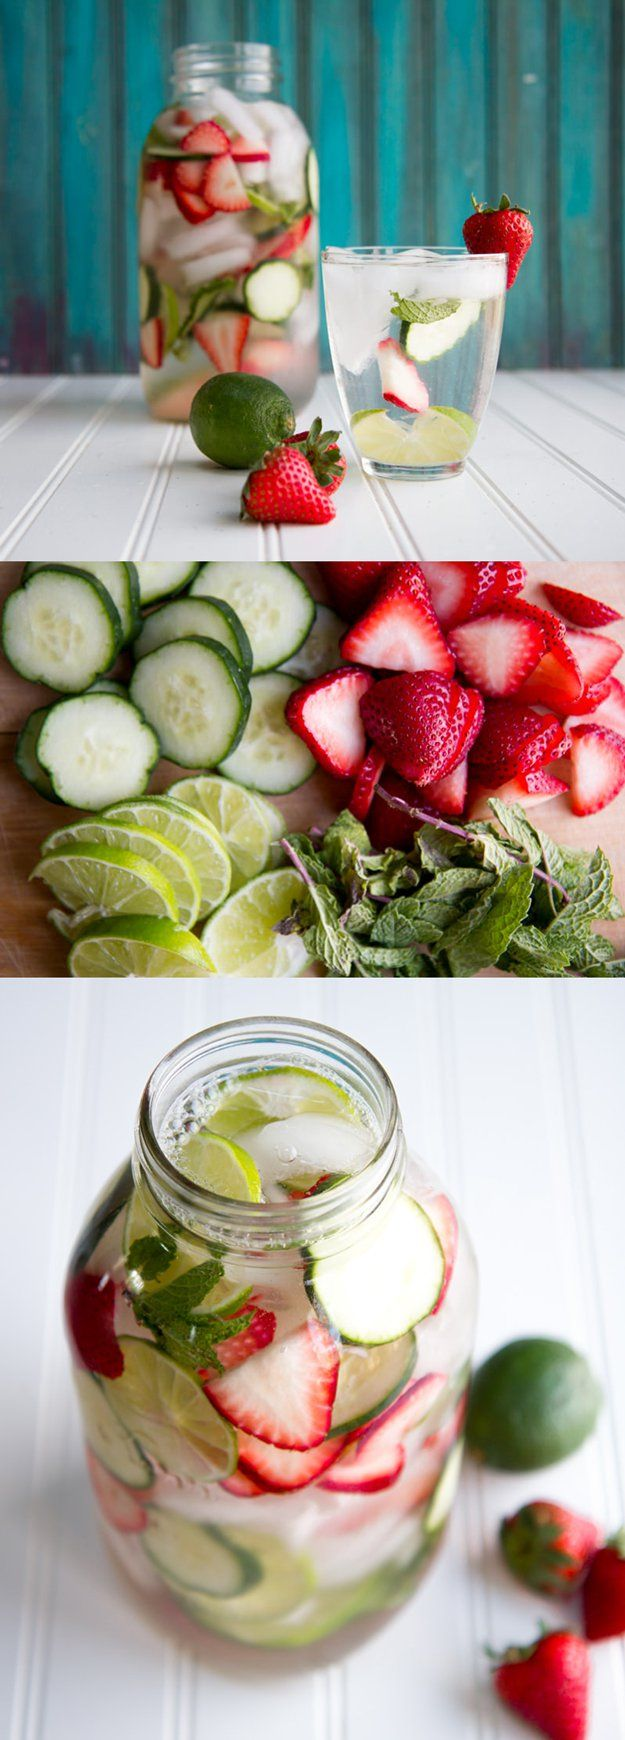 DIY Detox with These Easy To Make Refreshing Detox Waters DIYReady.com   Easy DIY Crafts, Fun Projects,